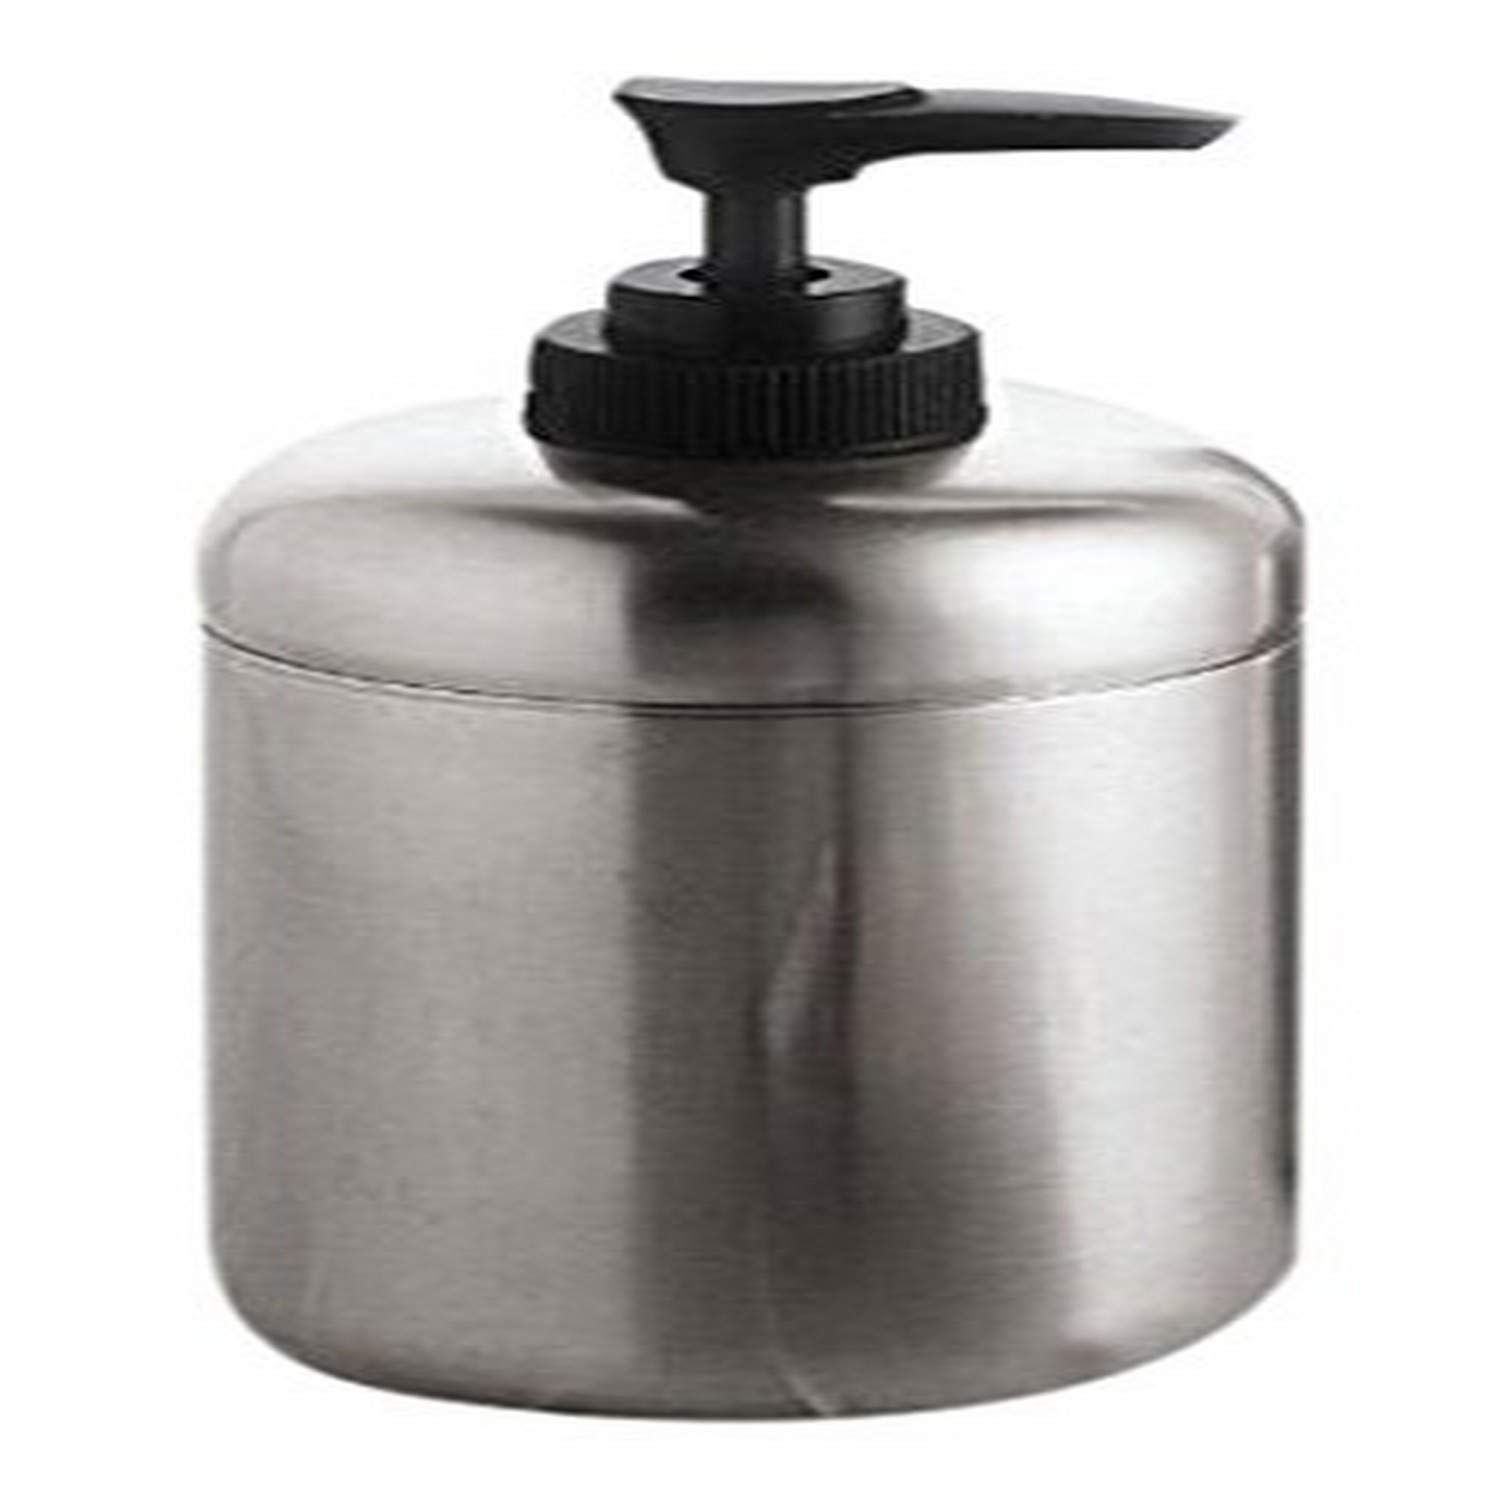 Gedy Gedy 1180 38 Margot Soap Dispenser 1 5 L X 2 9 W Stainless Steel Amazon In Home Improvement